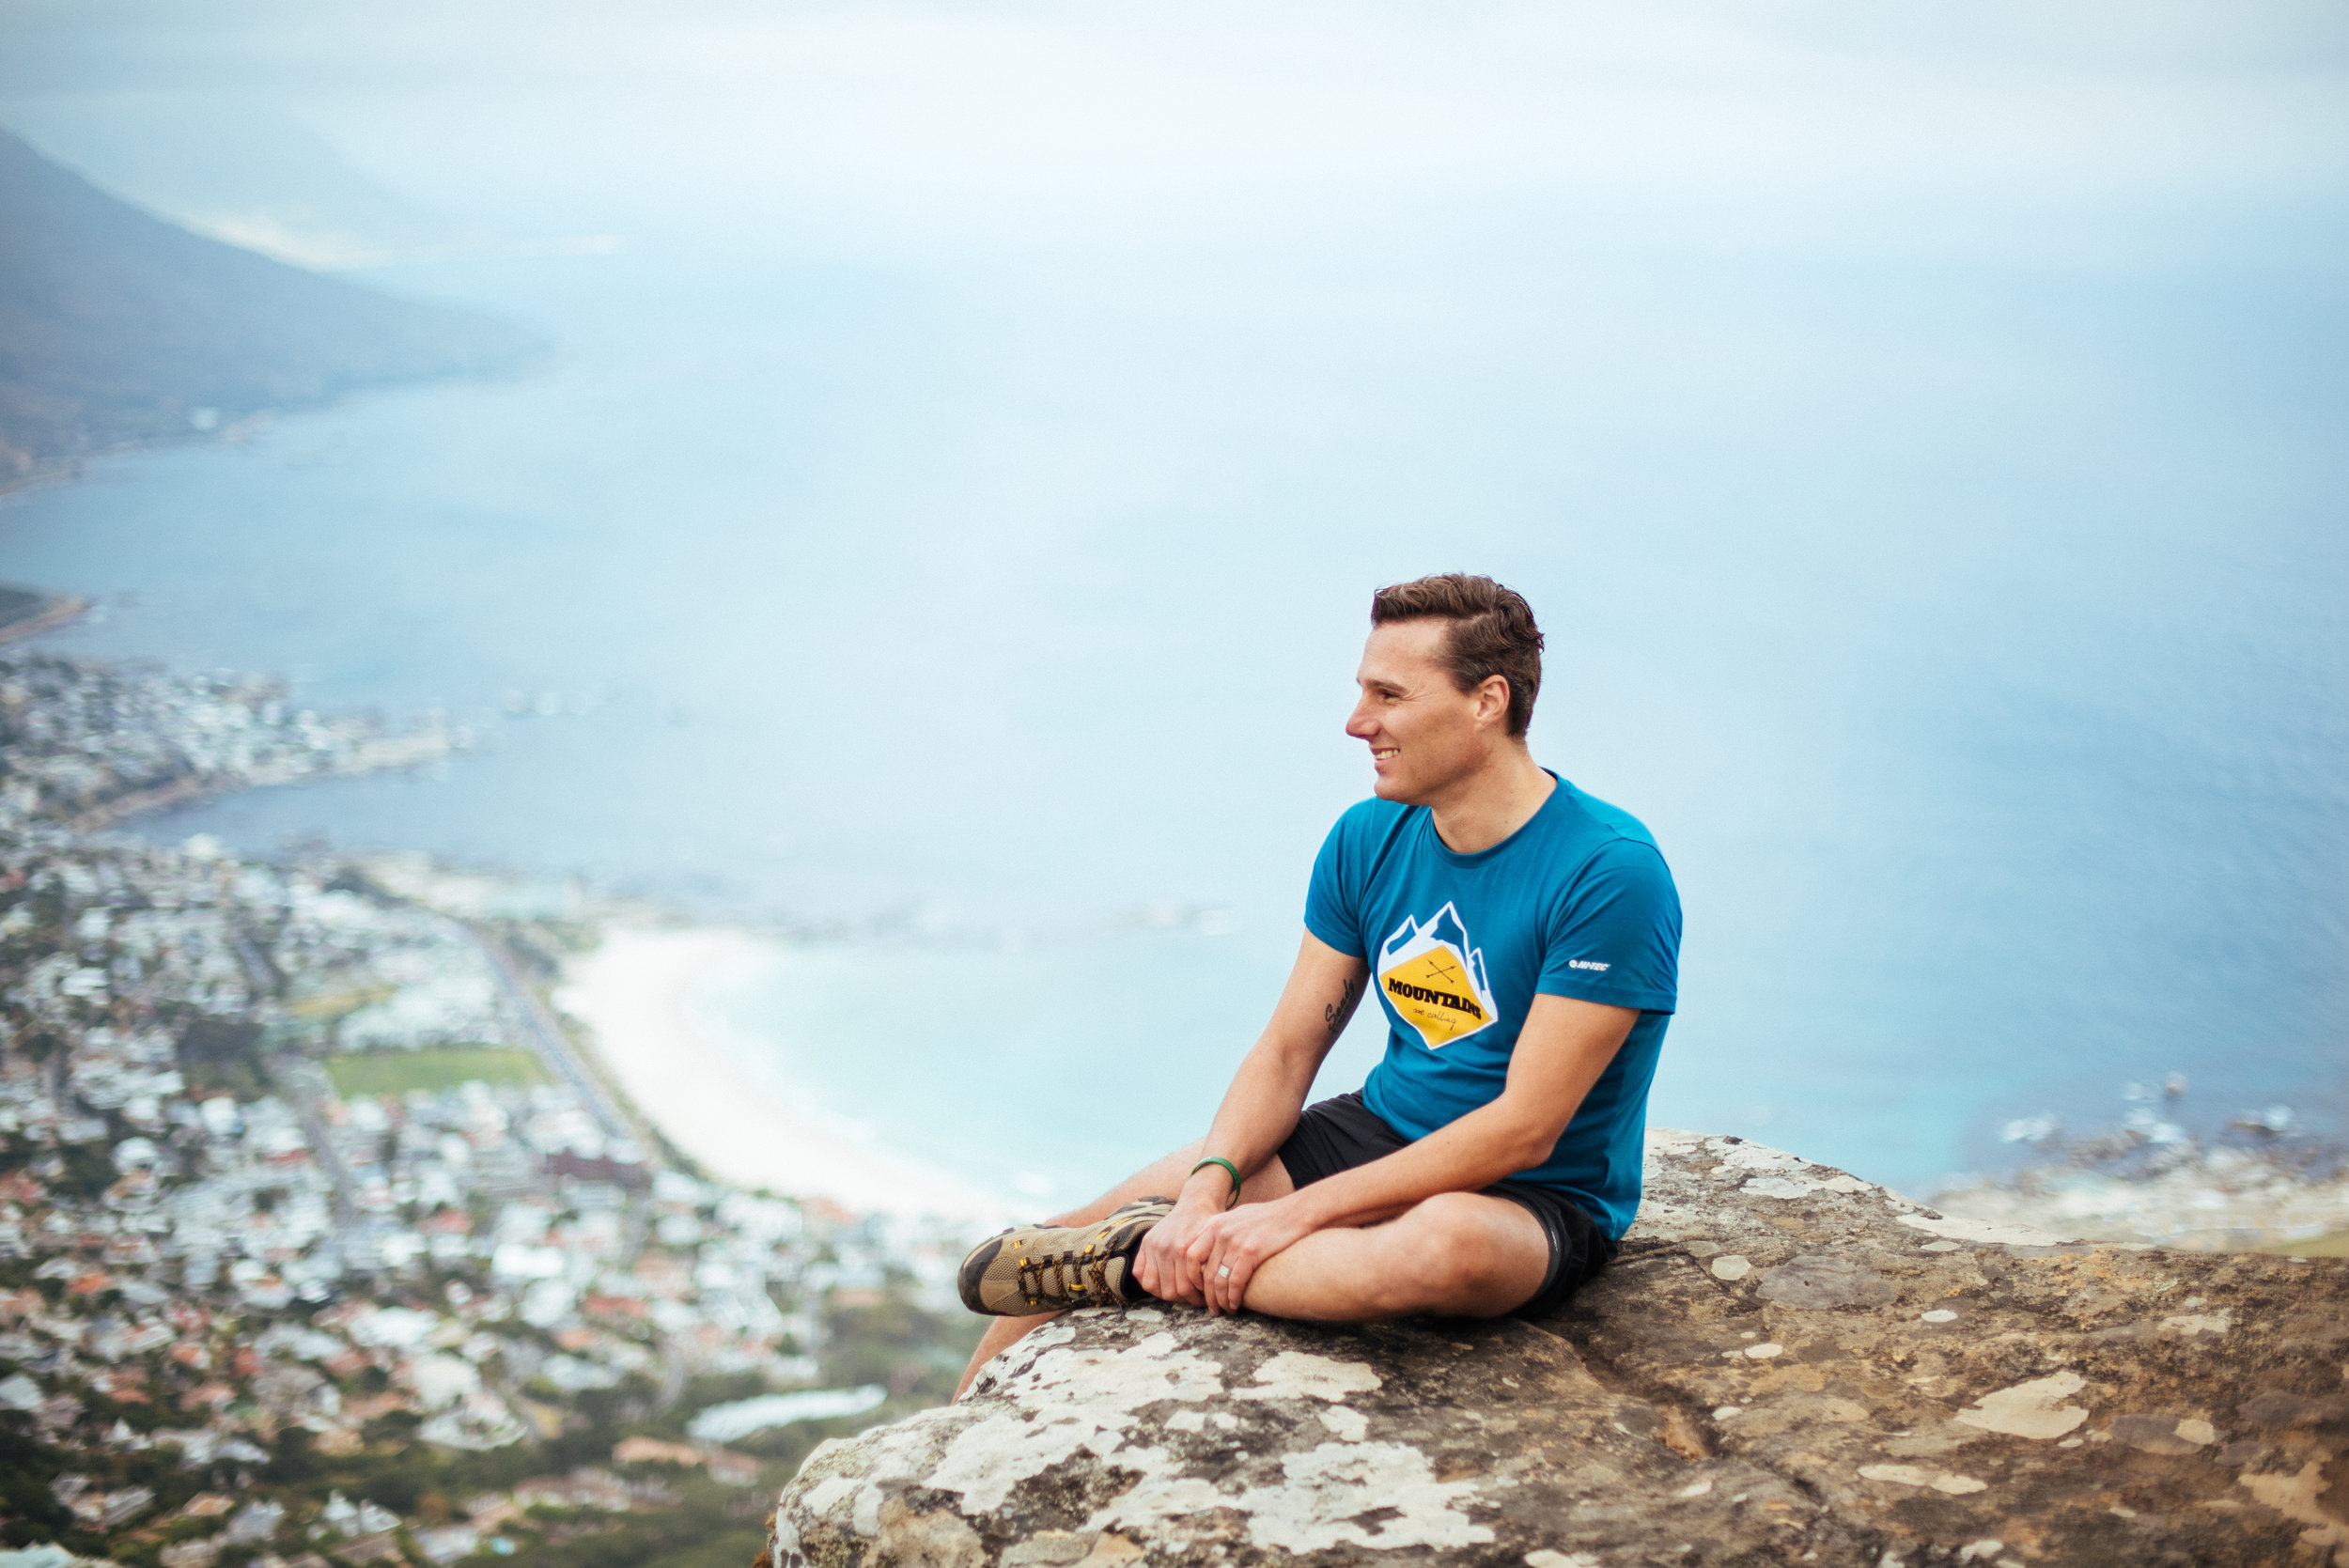 Image of Hein sitting on a ledge on Lionshead overlooking Camps Bay, Cape Town, South Africa